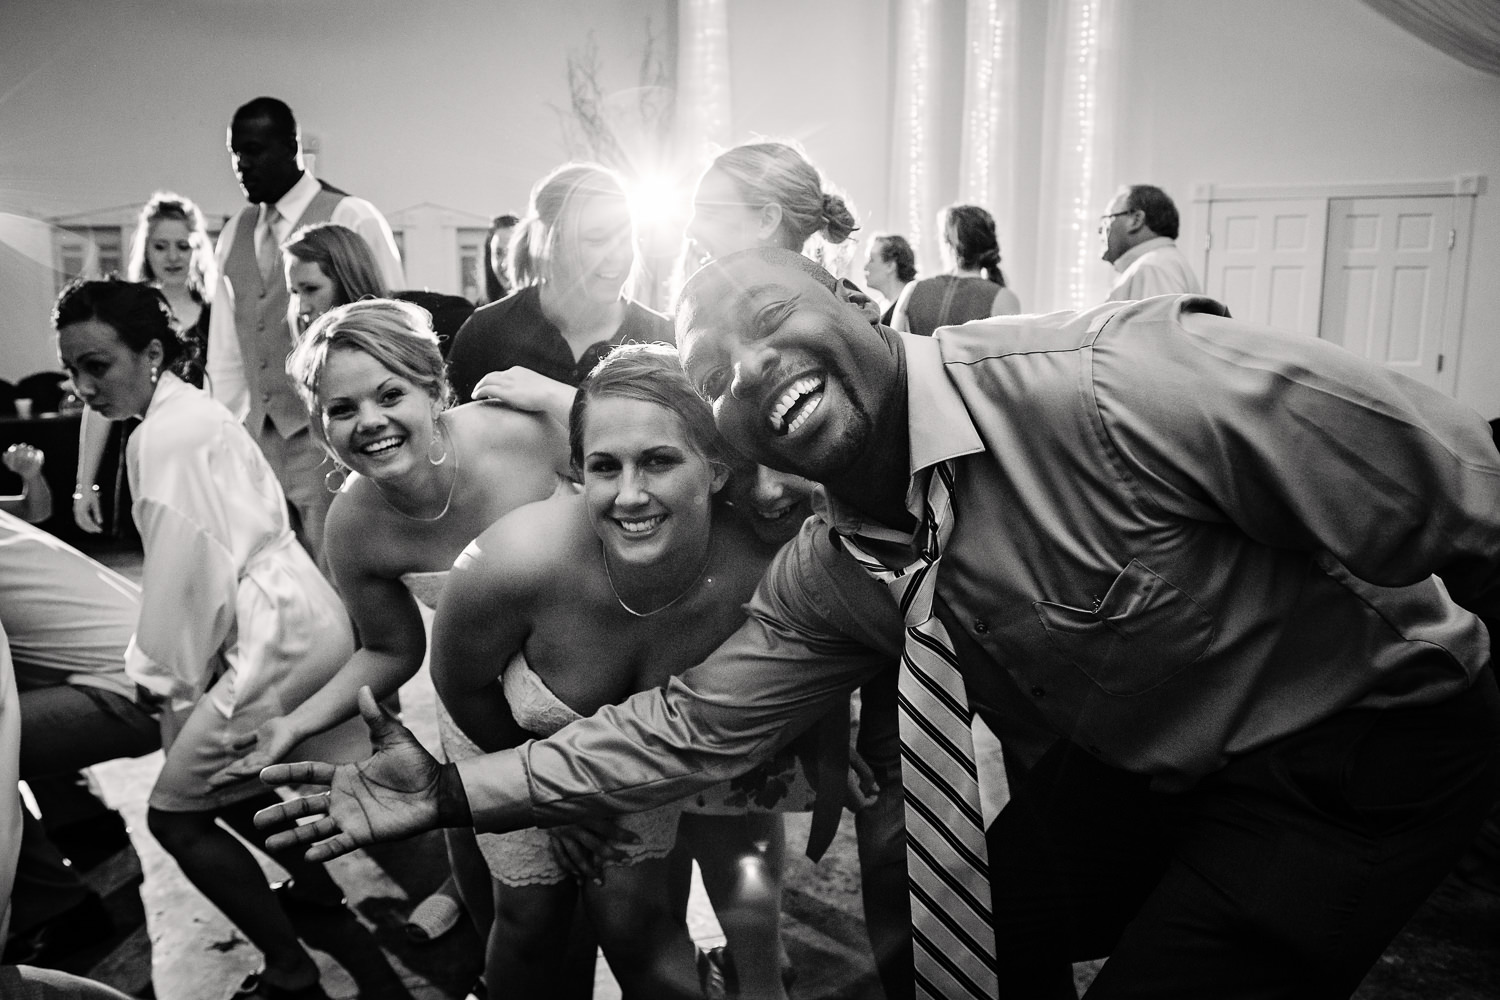 billings-montana-chanceys-wedding-reception-father-daughter-guests-candid.jpg